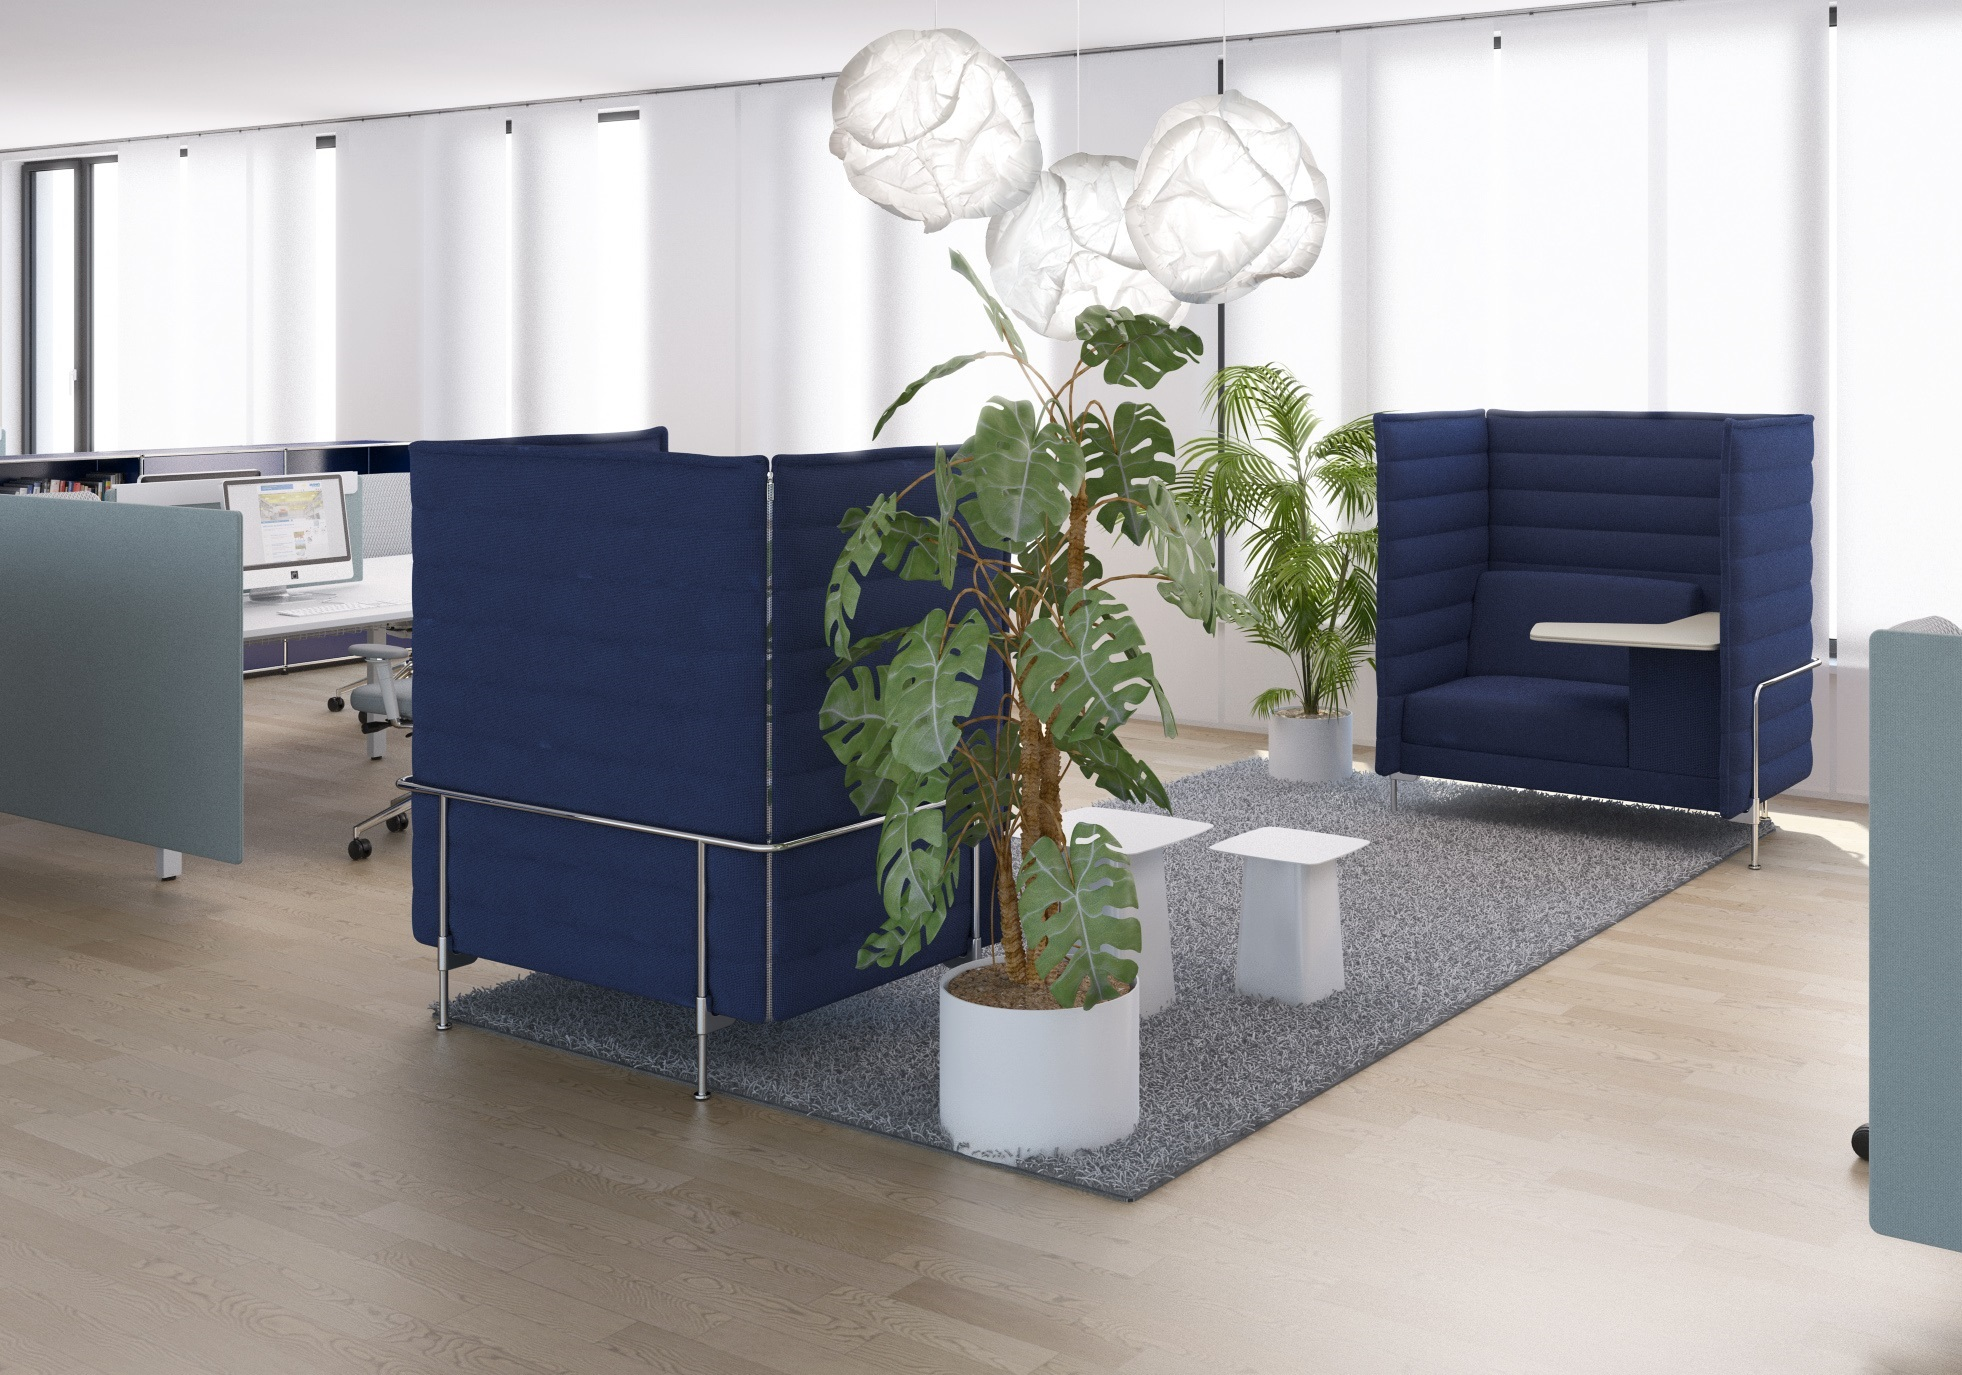 Sustainable Office plants